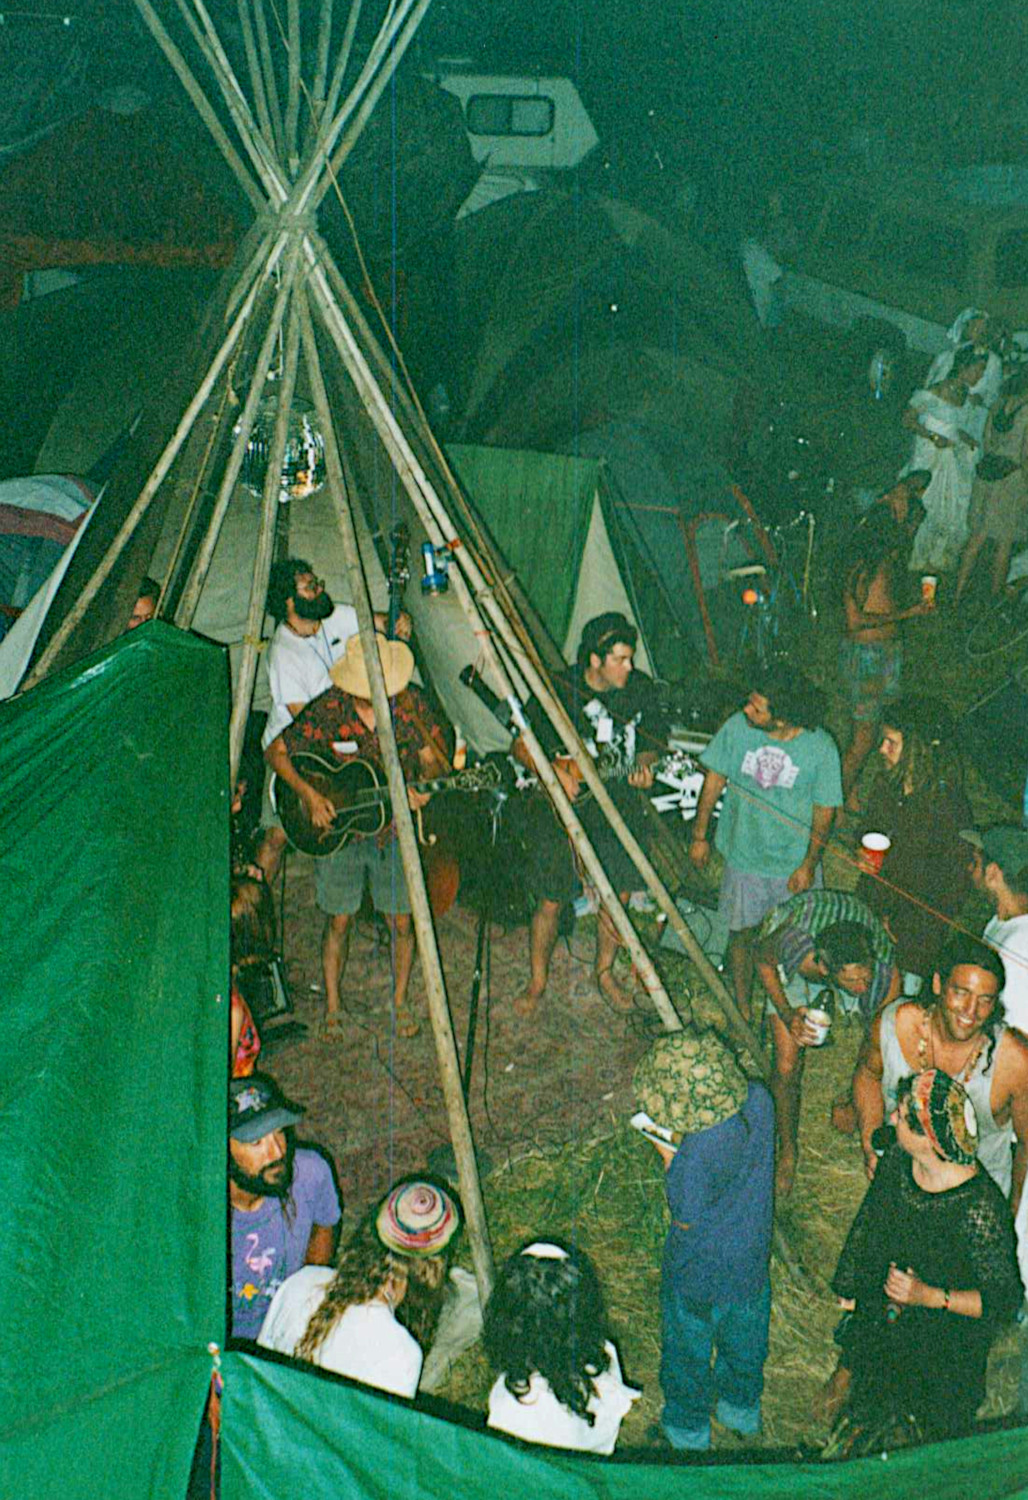 CC_OCF_Teepee party View2.jpg